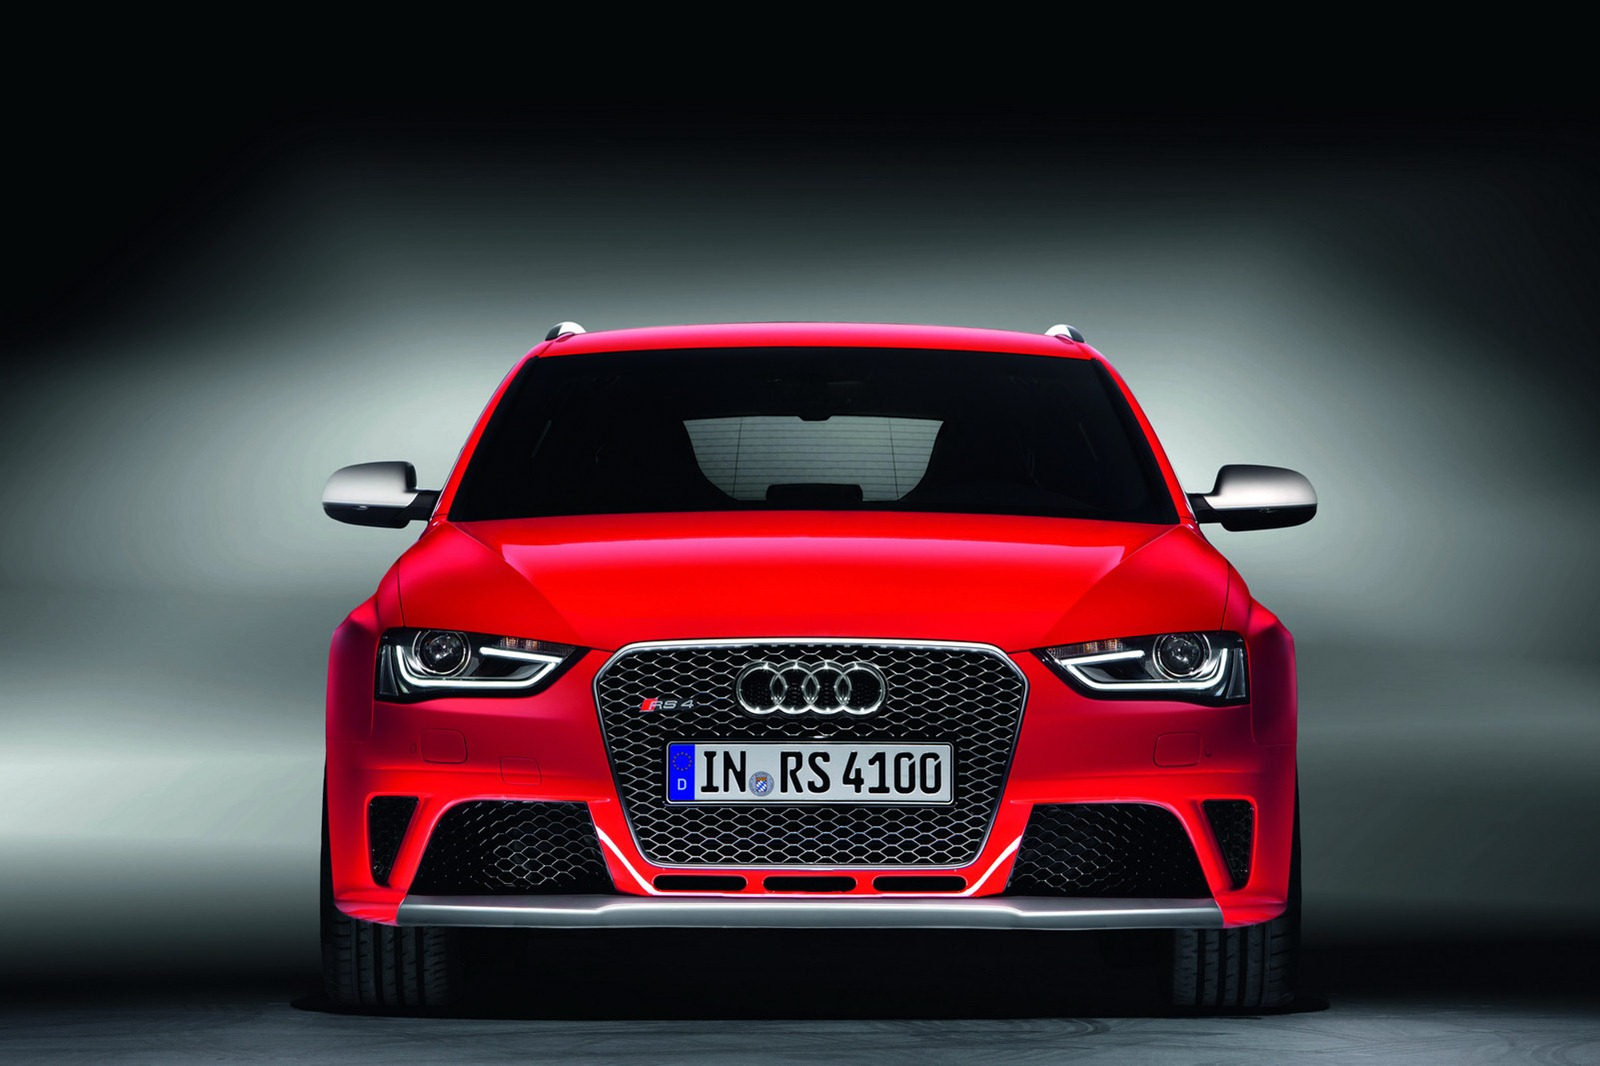 Full Hd Car Wallpapers 1080p Bmw 2012 Audi Rs4 Avant Specs And Photos Autoevolution